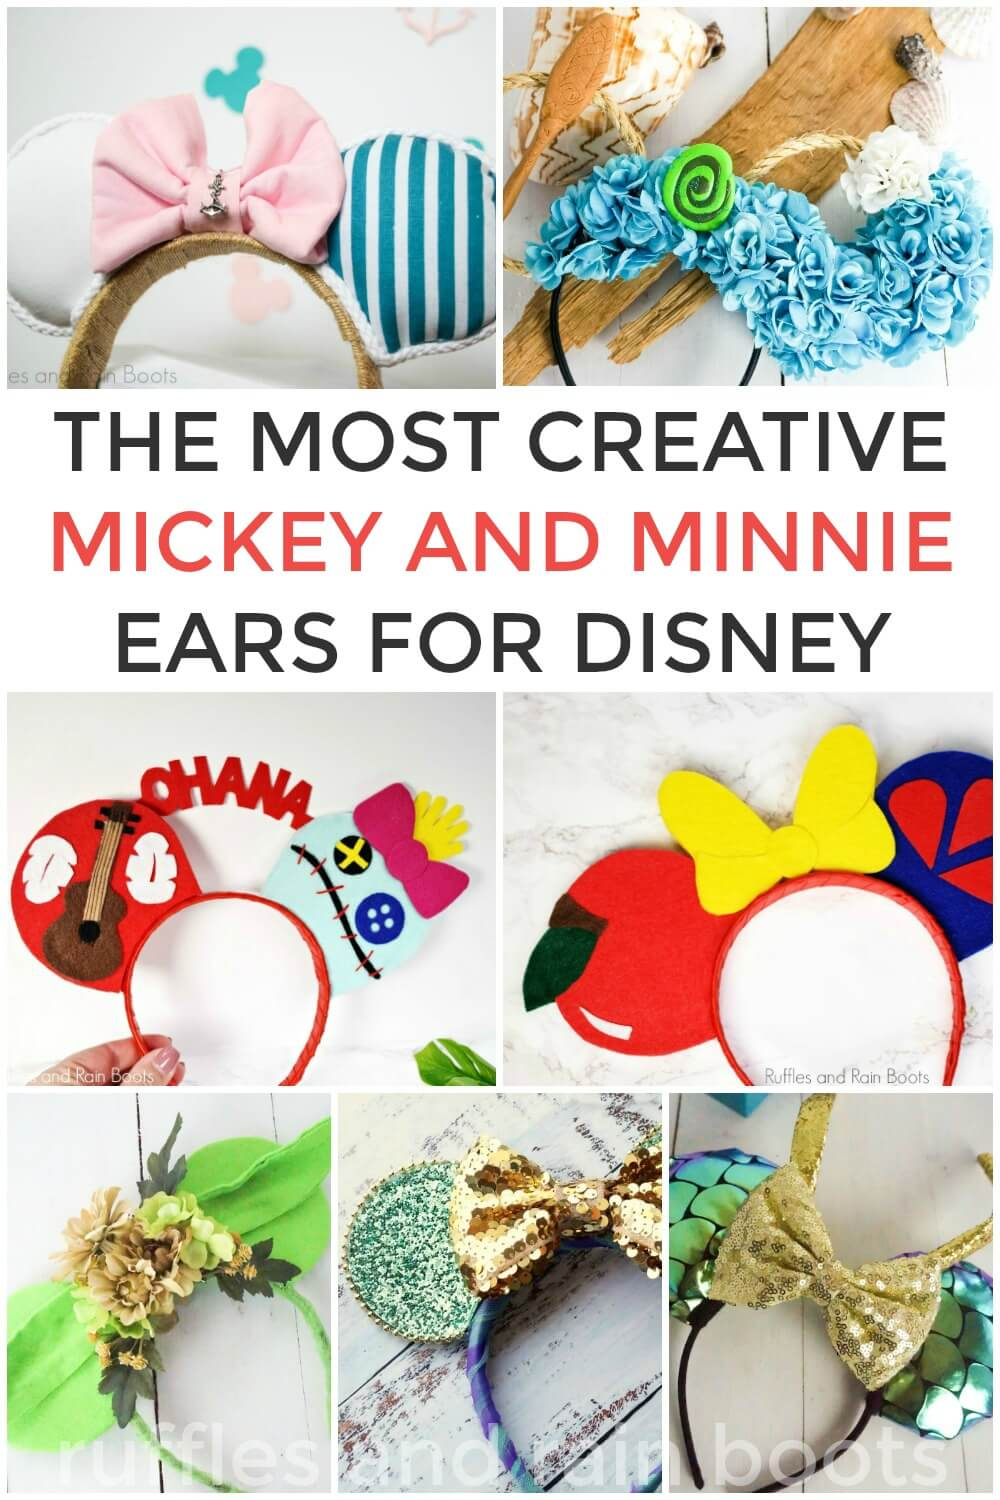 a huge collection of DIY mickey ear tutorial in a collage with text which reads the most creative mickey and minnie ears for disney